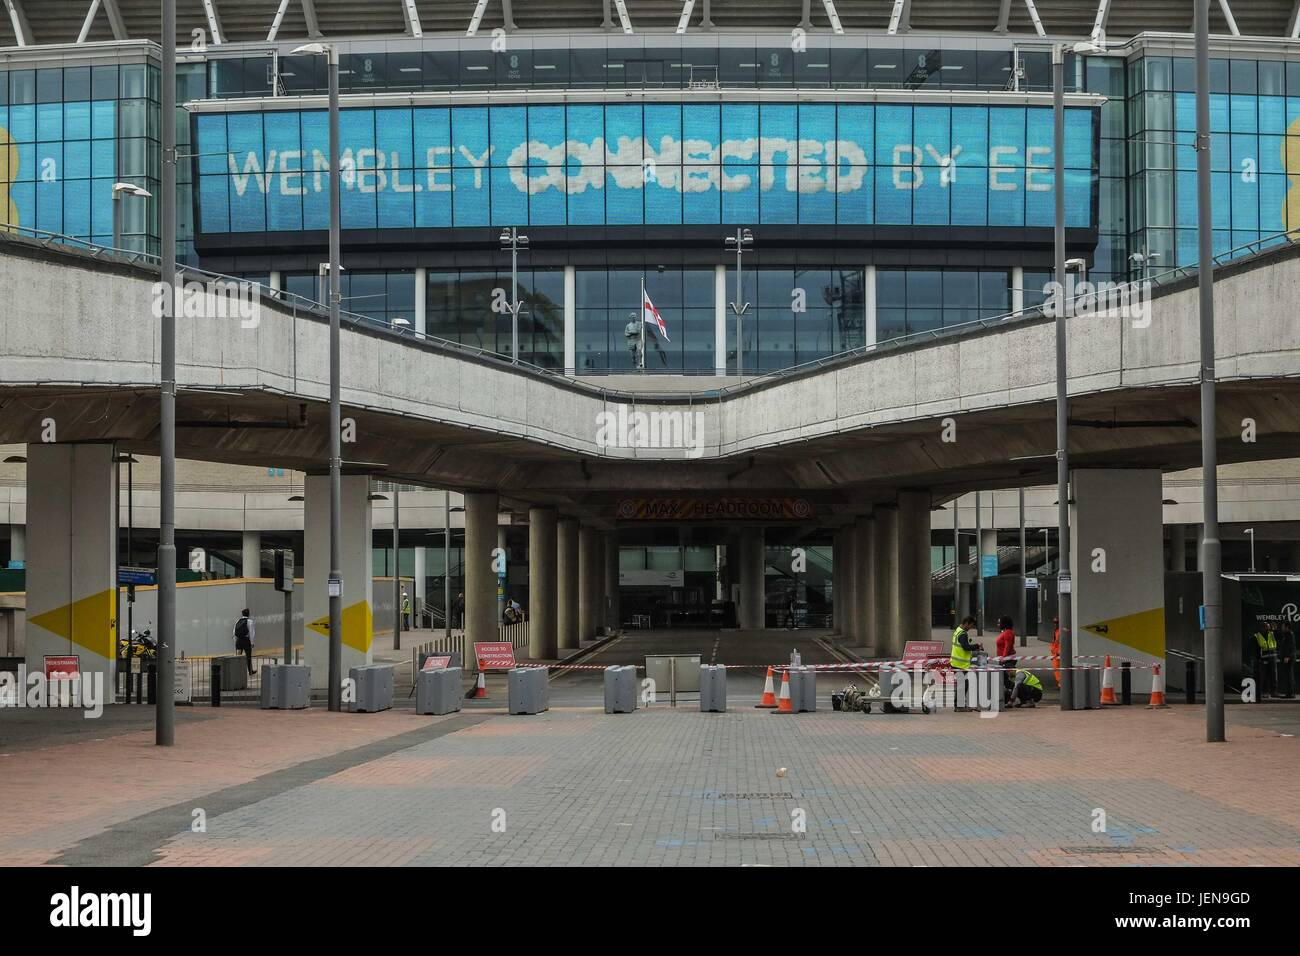 London, UK. 27th June 2017. Security barriers  installed at Wembley Stadium after recent terror attack in the U.K Stock Photo